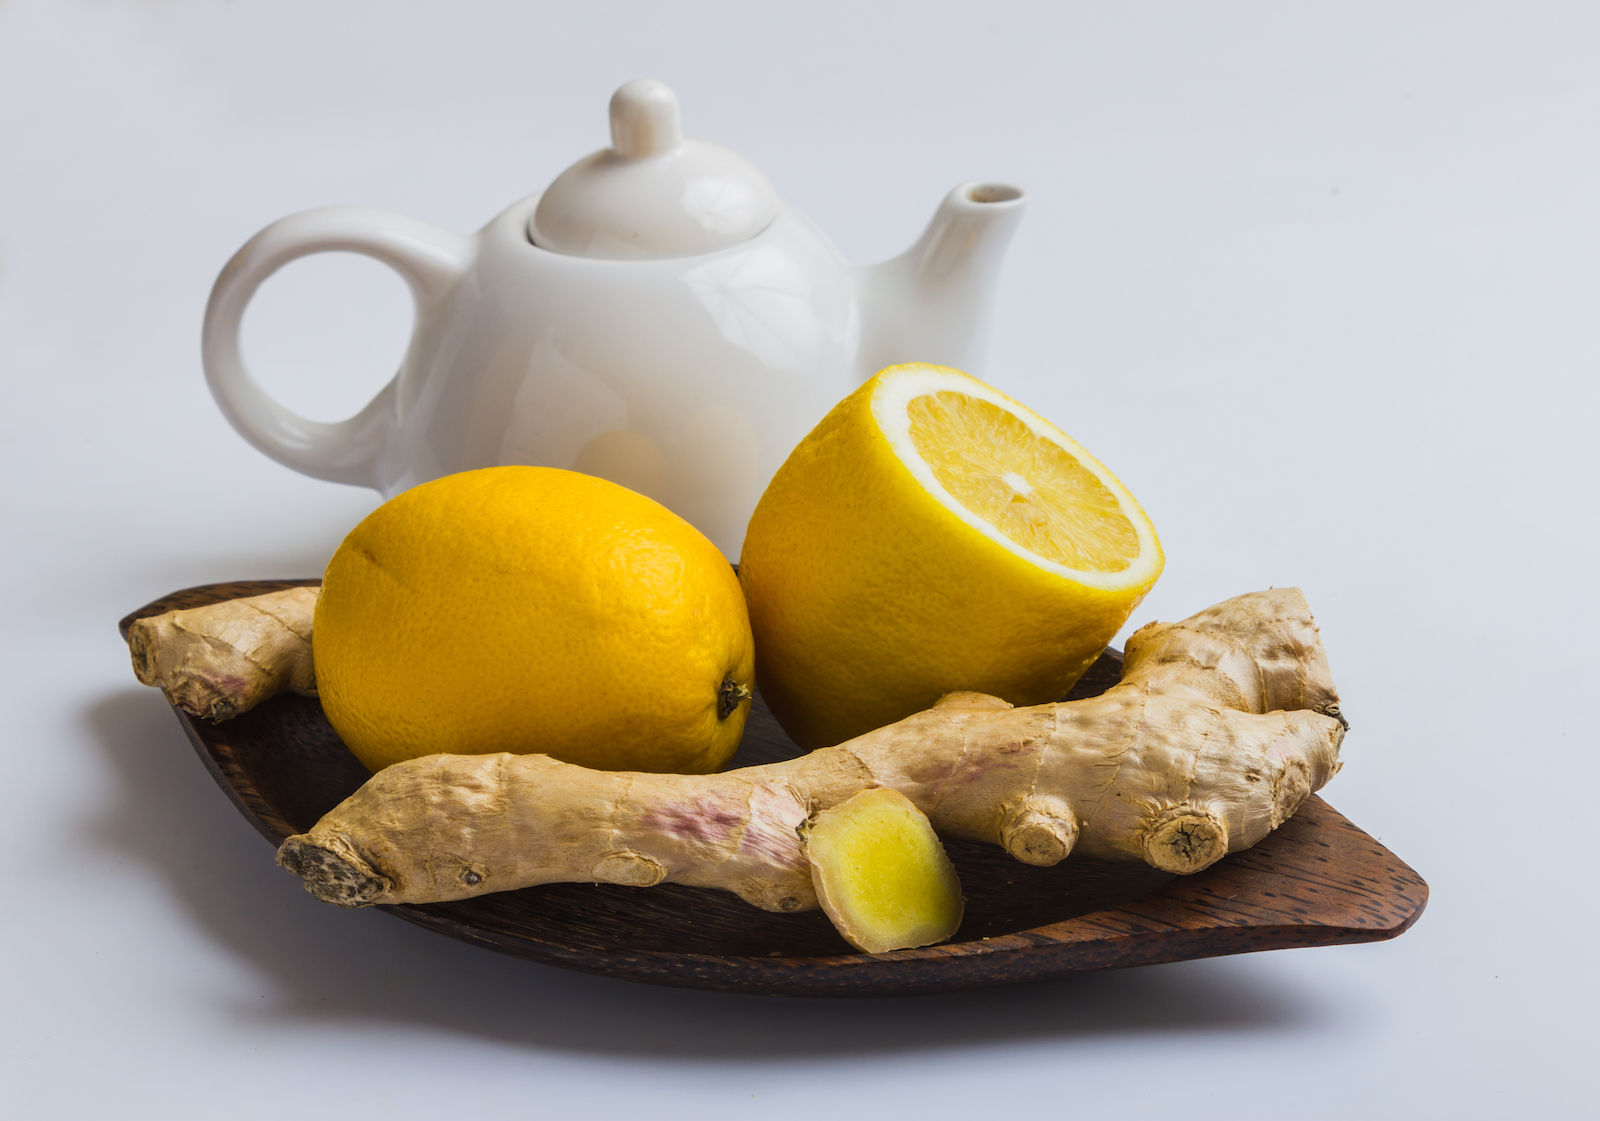 Lemon and Ginger | 5 Best Detox Tea Brands (And Why People Love Them!)